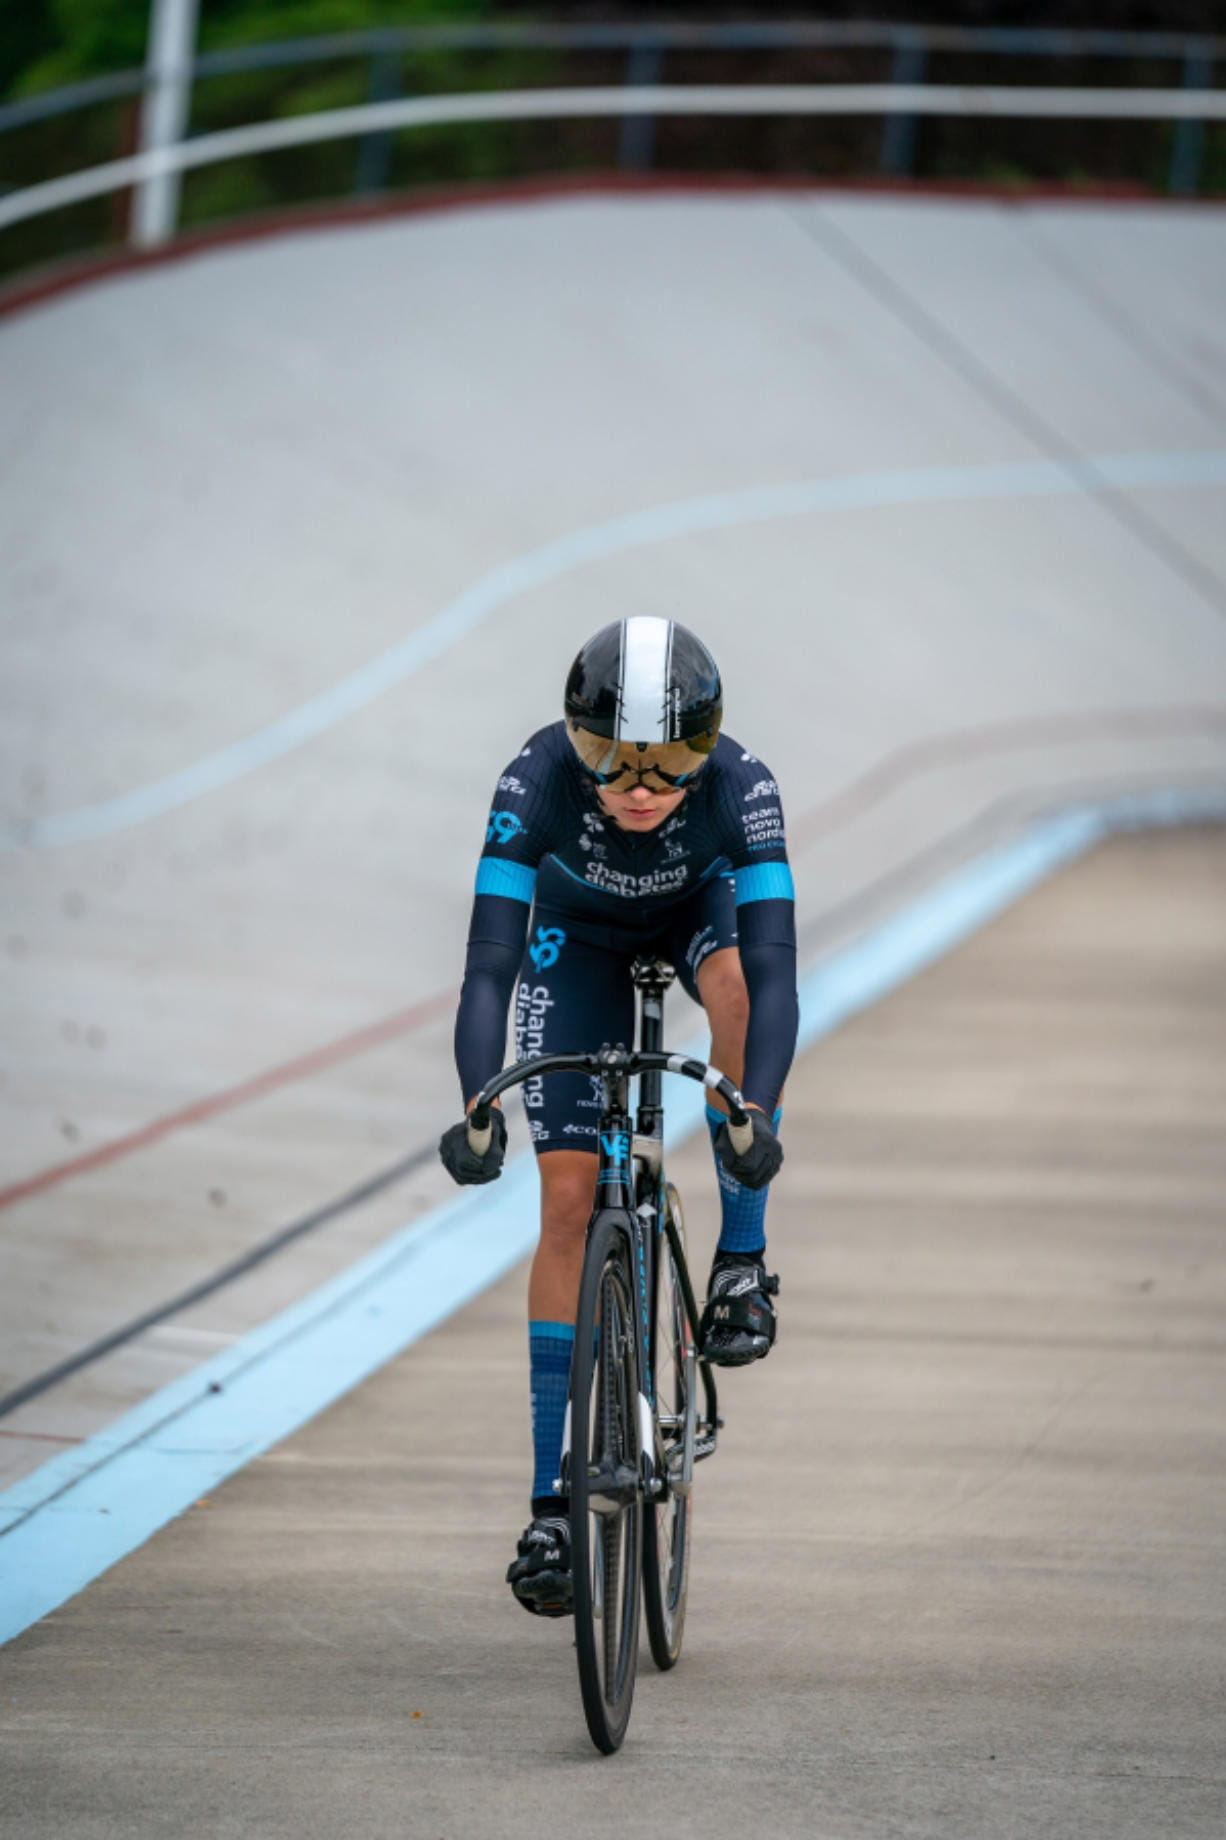 Vancouver native McKenna McKee rides her bike at the Alpenrose Velodrome in Portland. Track cycling is a grueling sport where riders compete in short races inside a steeply banked oval, called a velodrome.